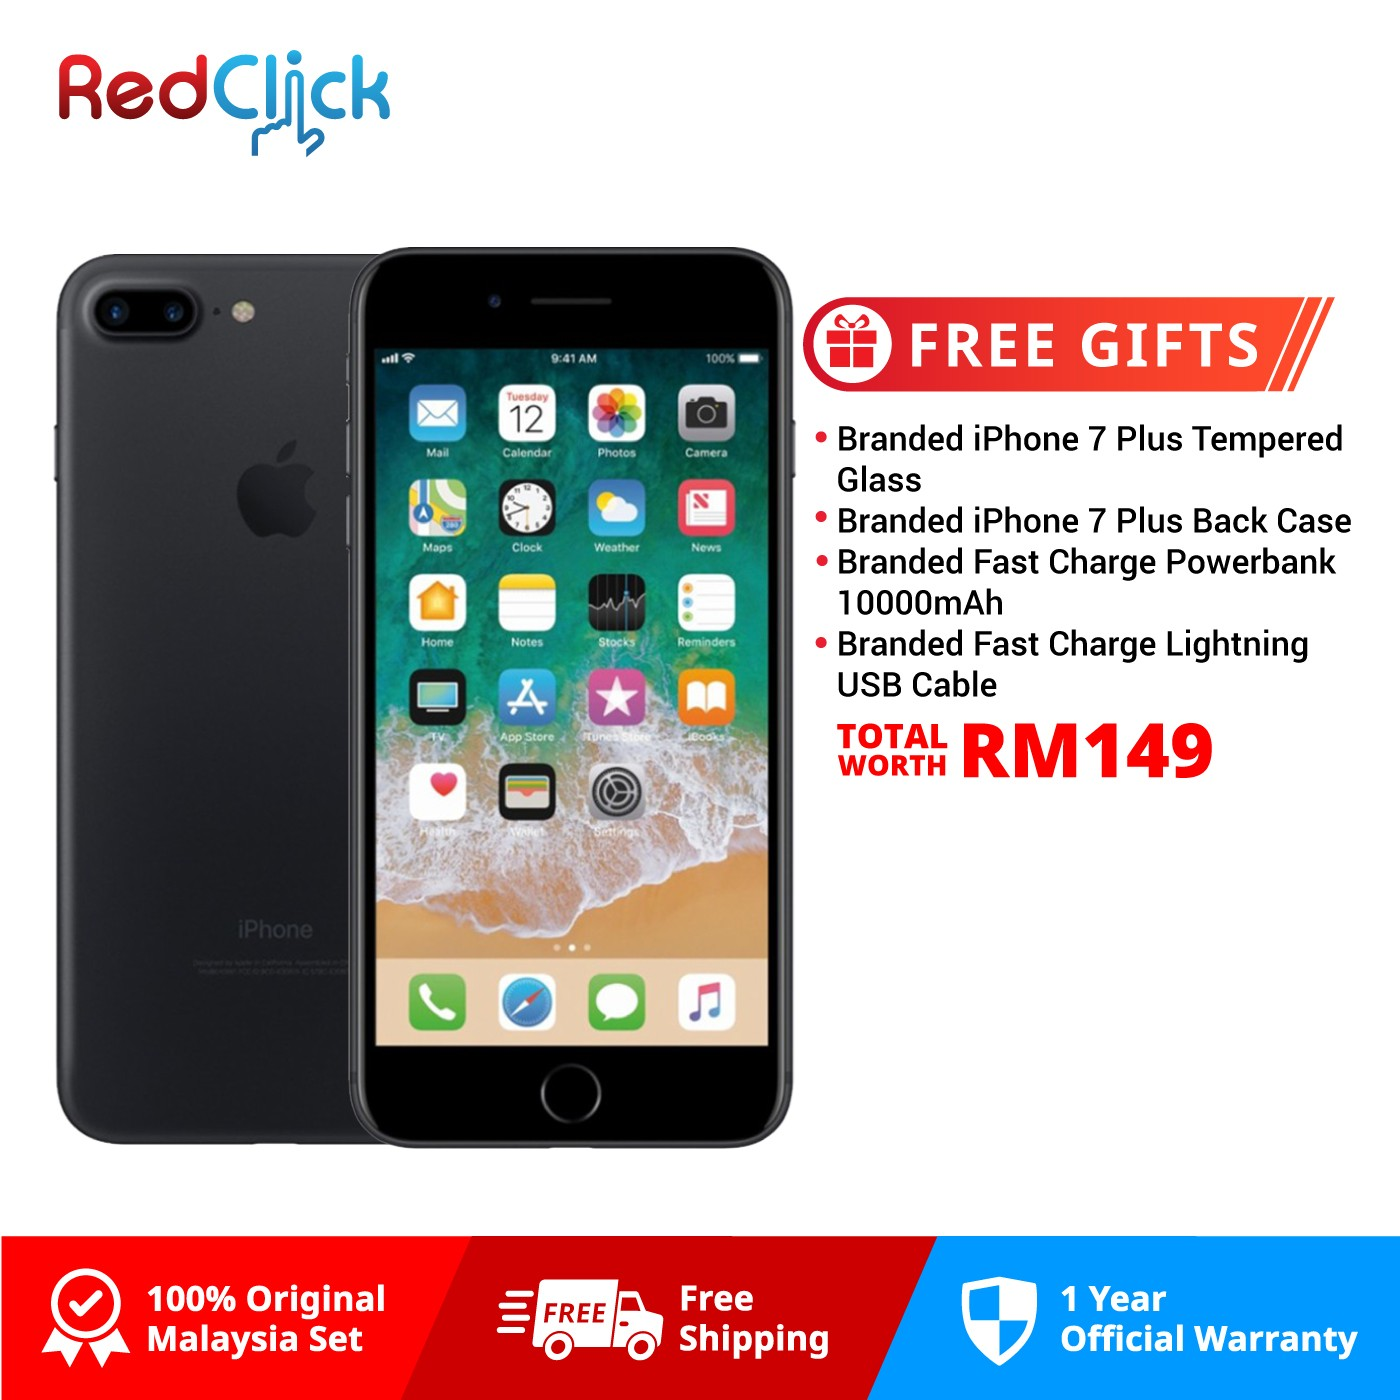 Apple iPhone 7 Plus (128GB) Original Apple Malaysia Set + 4